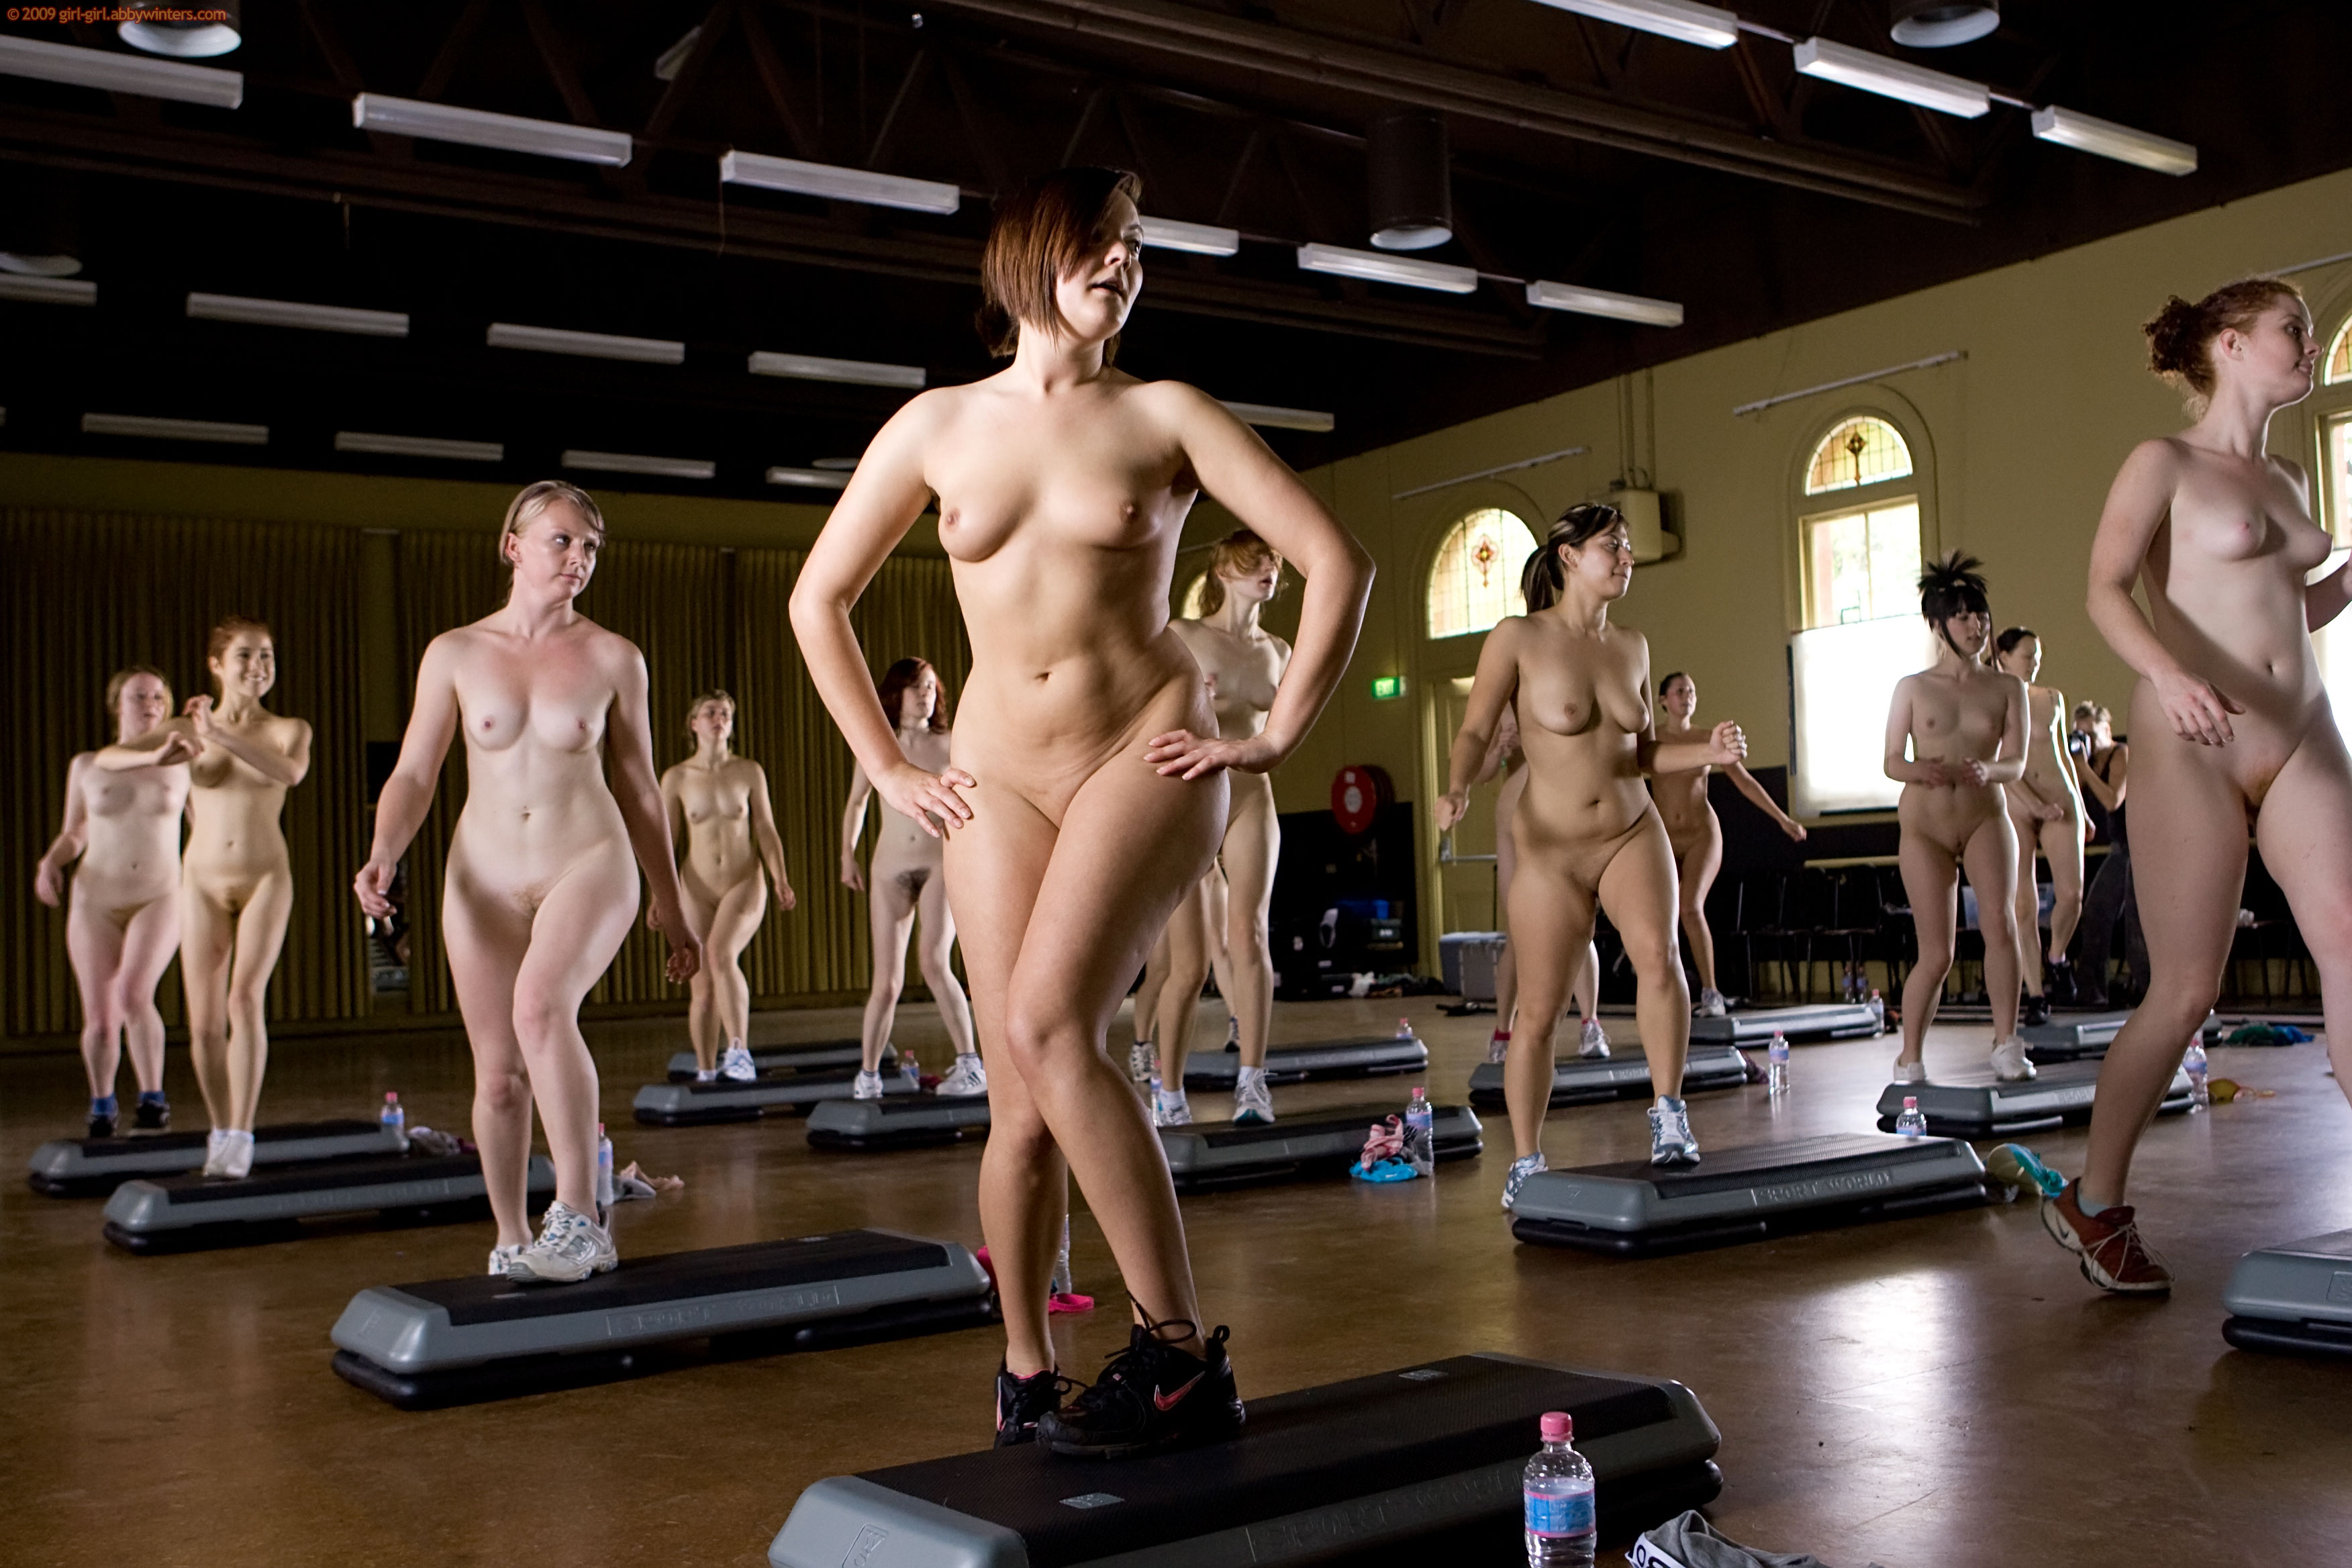 nudist-sports-for-adults-naked-fuller-figured-females